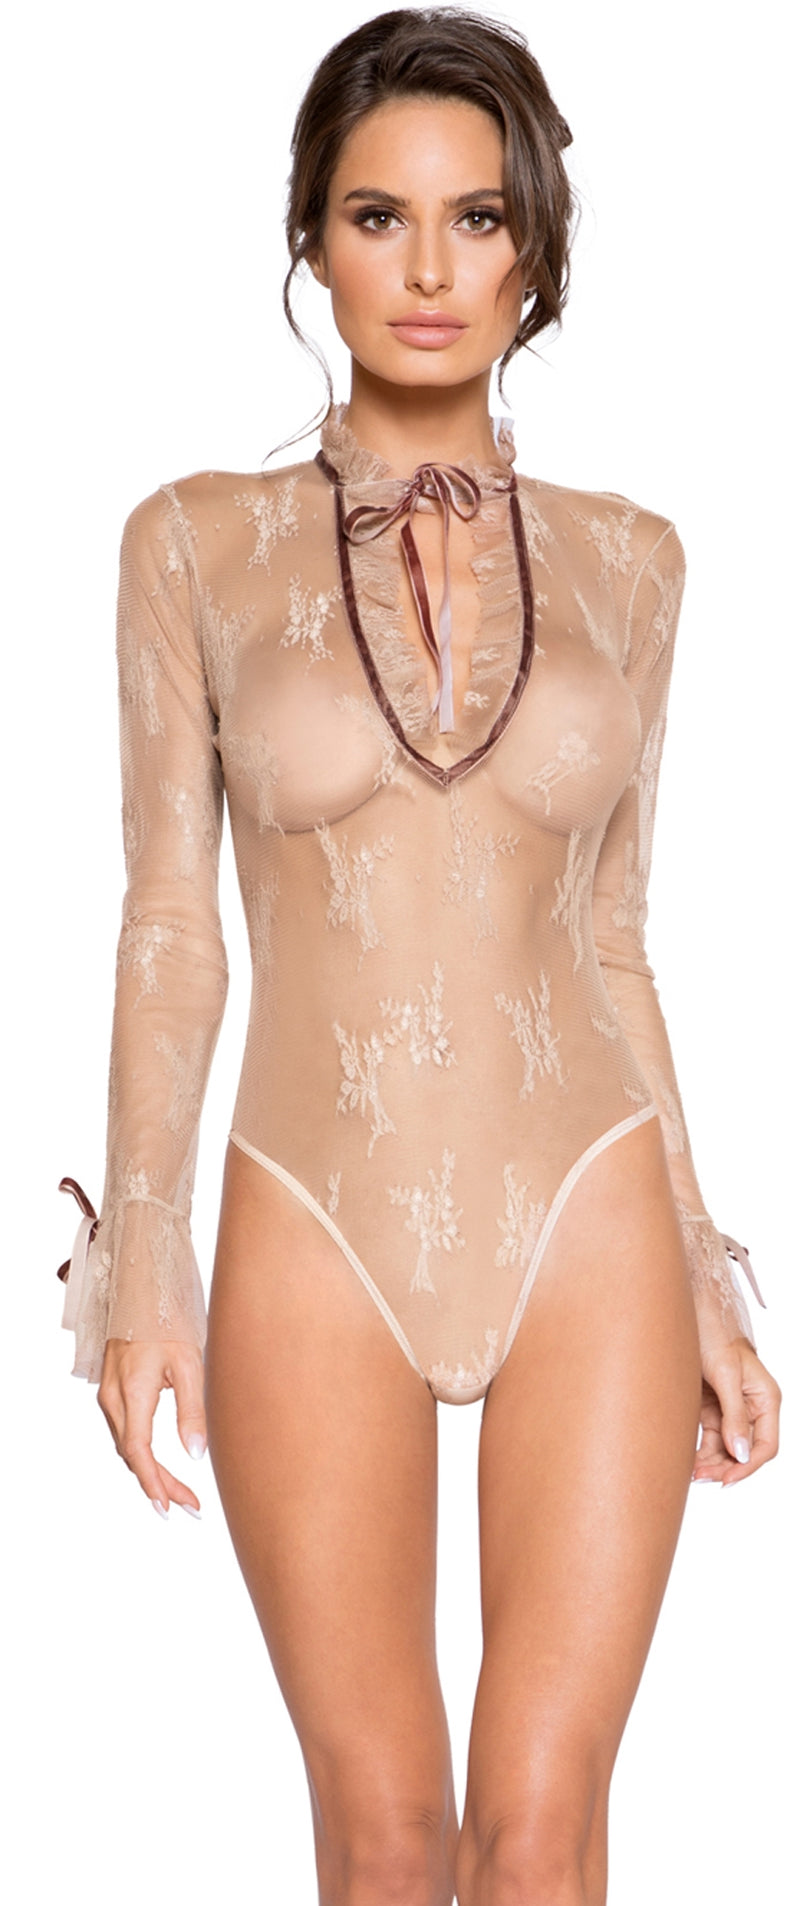 RM-LI249 Long sleeve sheer teddy main